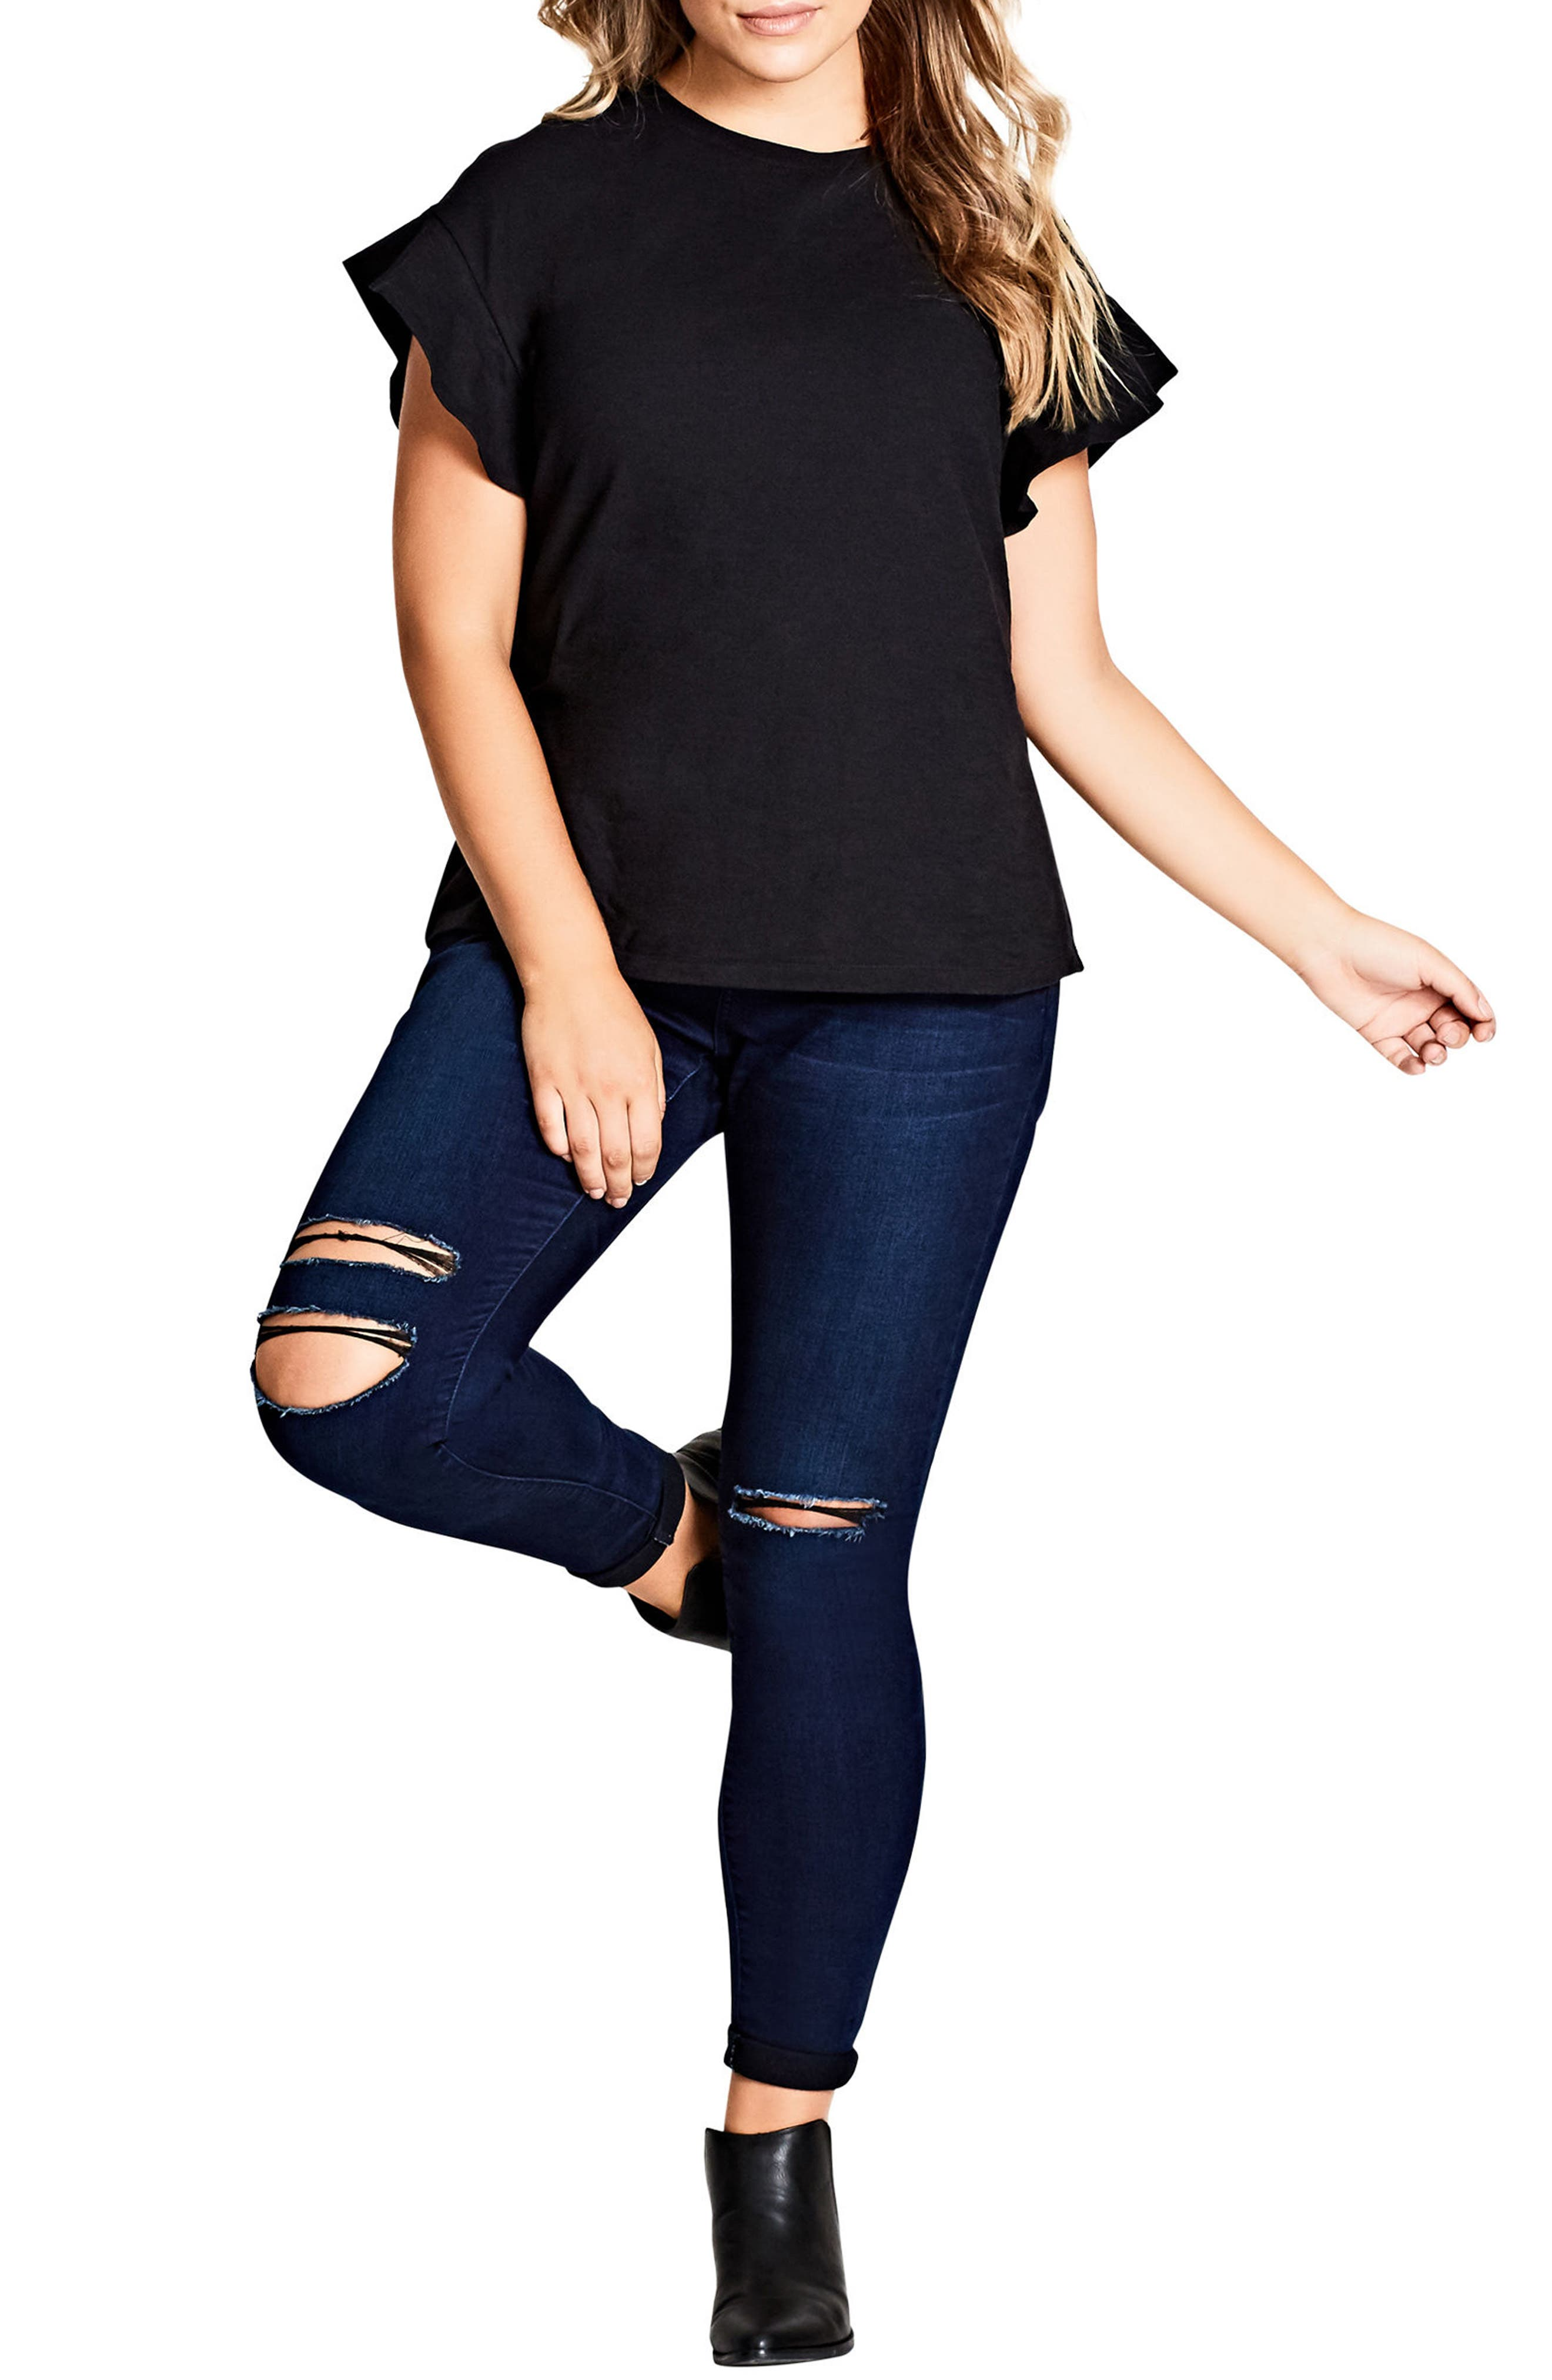 Main Image - City Chic Flutter Sleeve Tee (Plus Size)